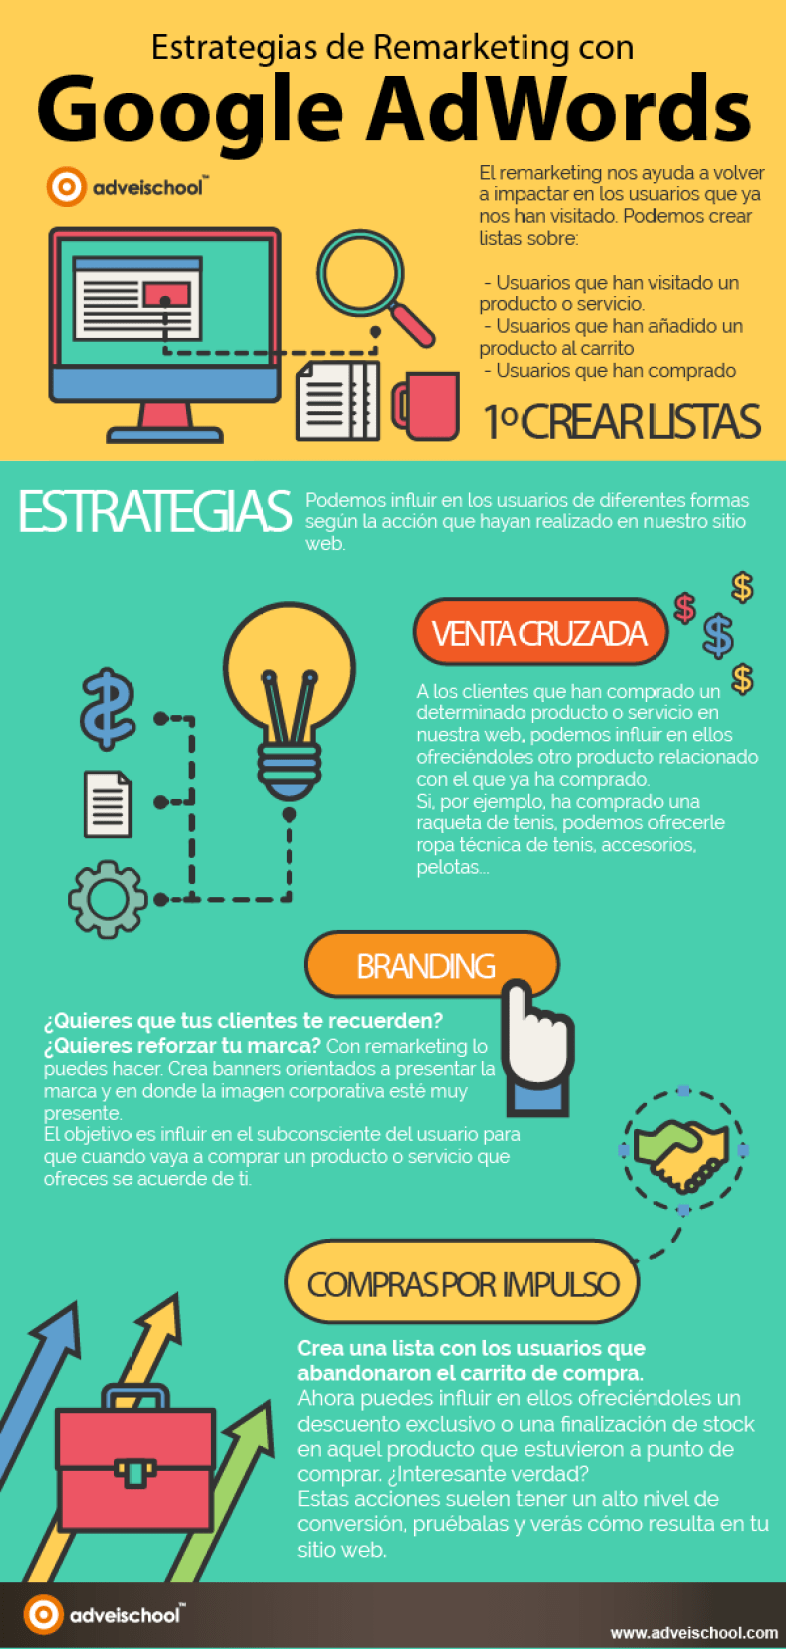 estrategias-remarketing-con-google-adwords-infografia